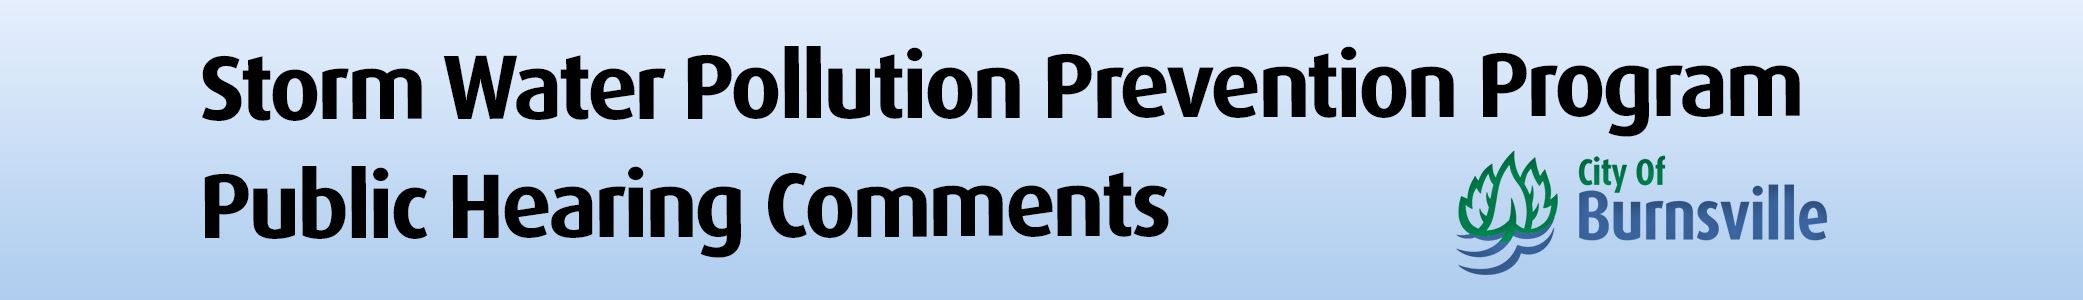 Storm Water Pollution Prevention Program public hearing comment header